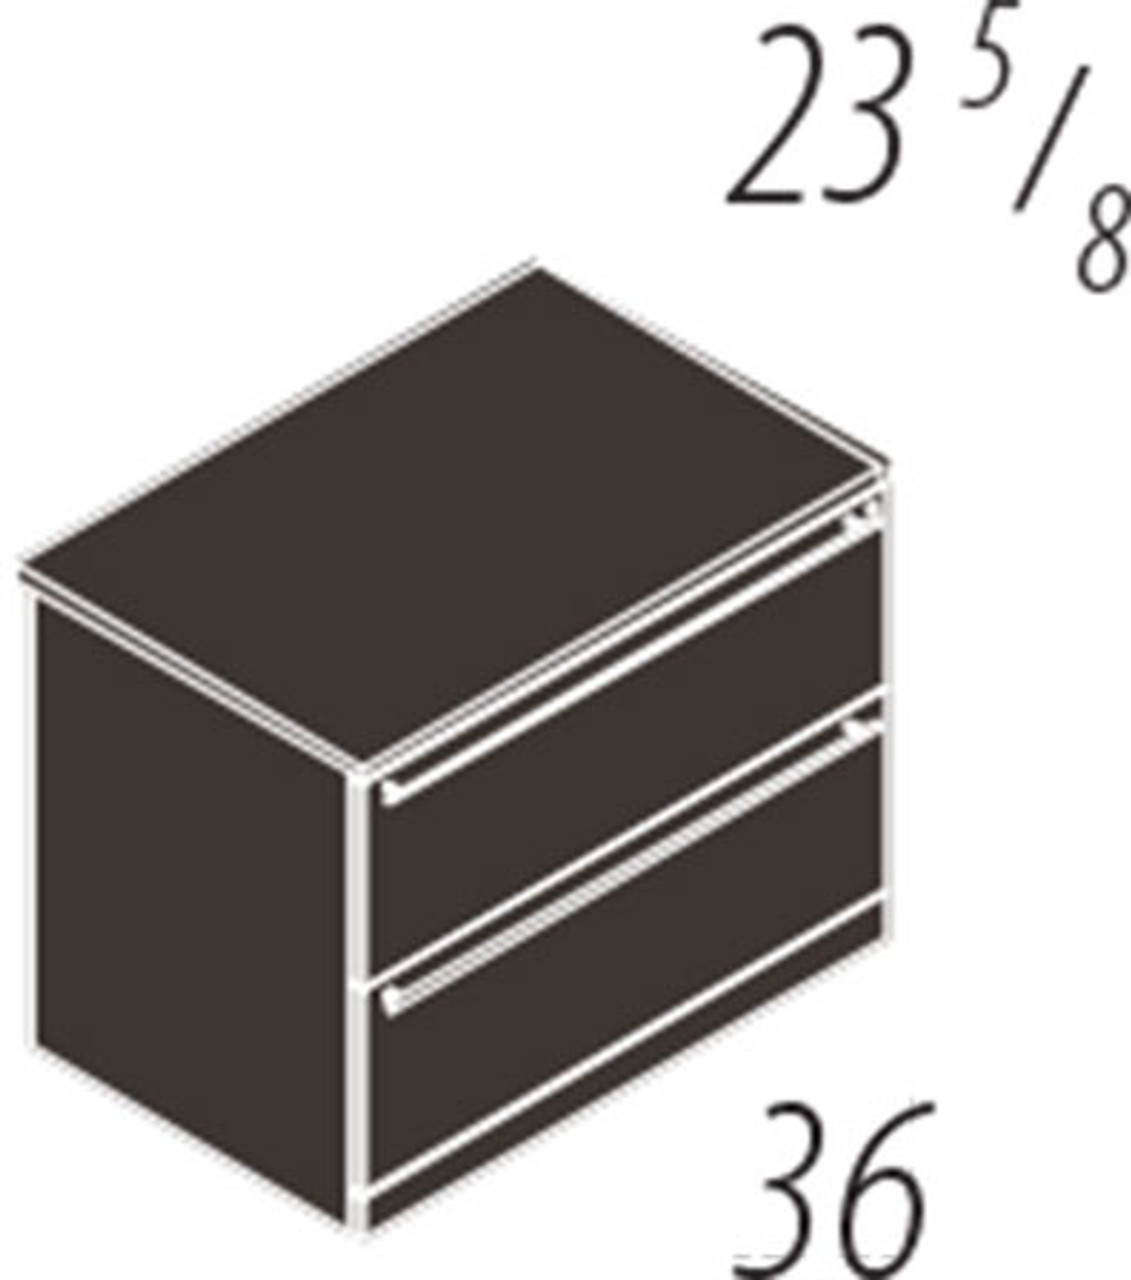 2 Drawers Lateral File Cabinet, #CH-VER-CAB9